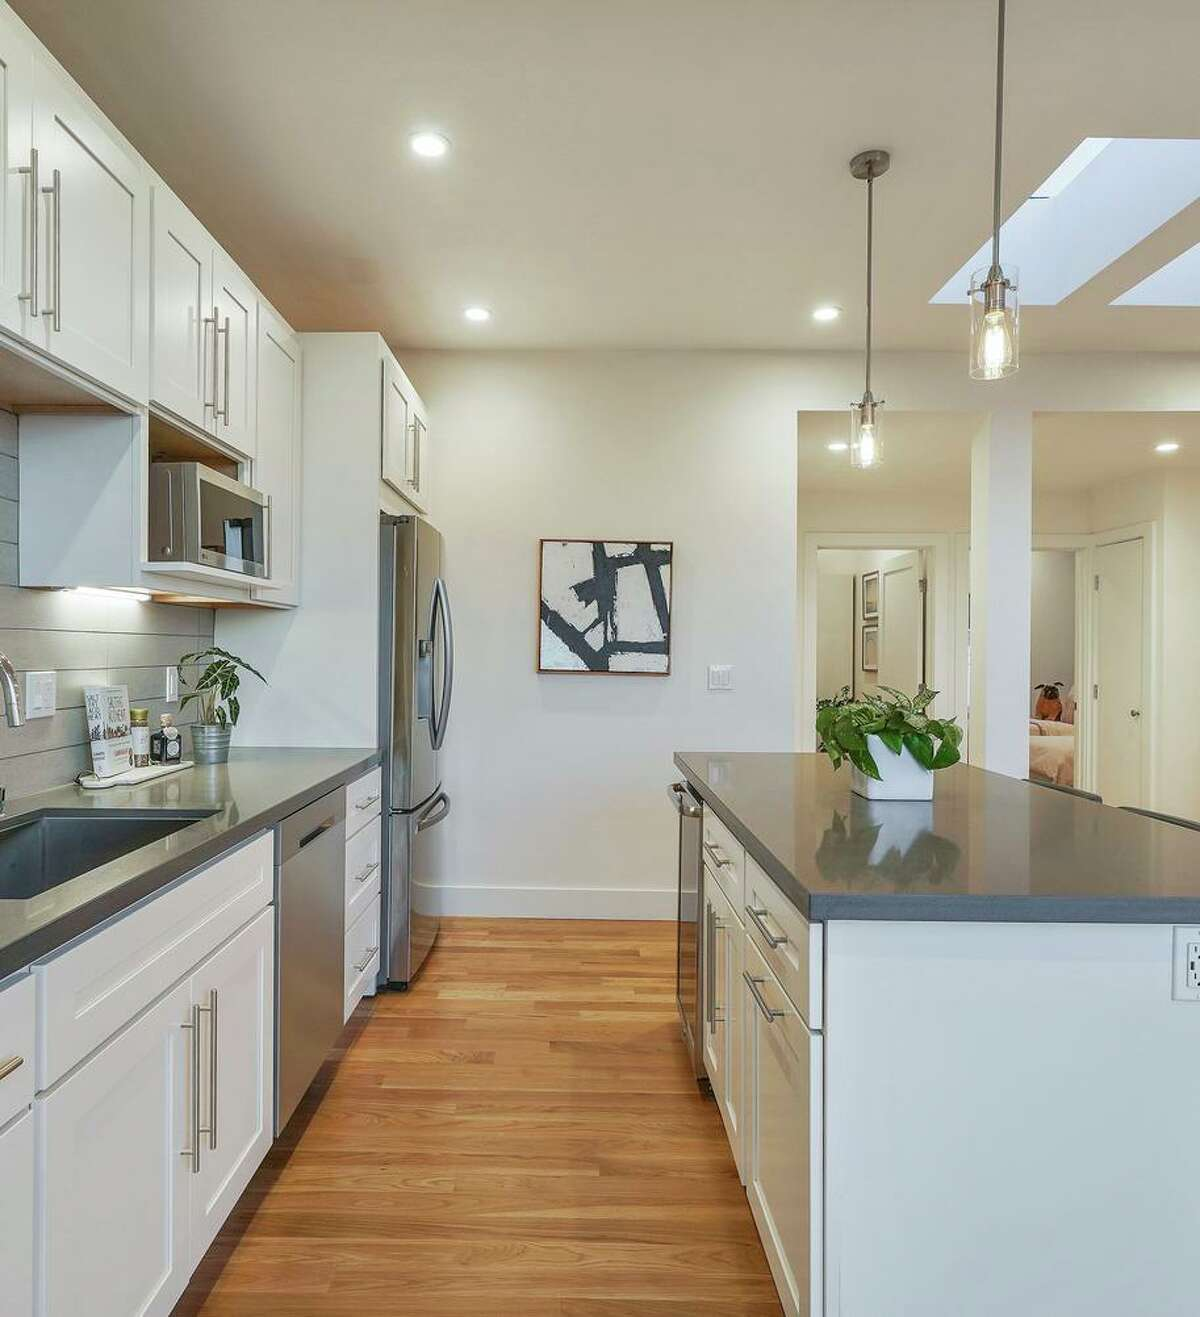 A pair of skylights help illuminate a kitchen anchored by a bar island at 363 Bright St. in Ingleside Heights.